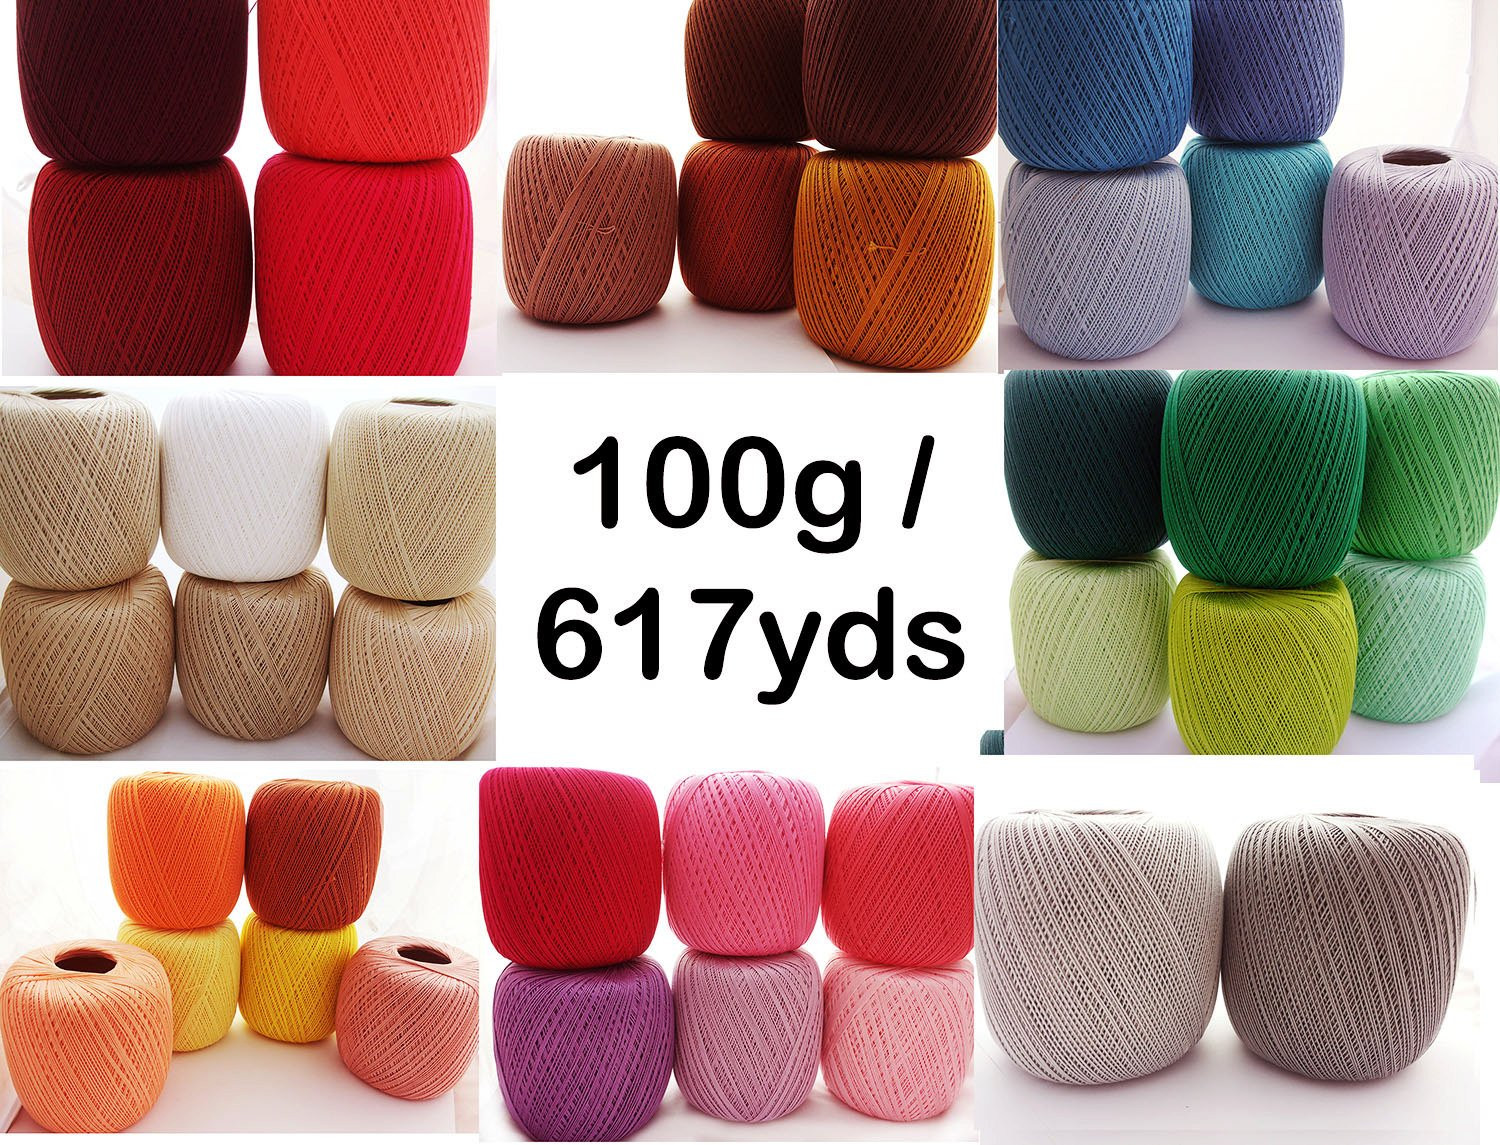 Size 10 Crochet Thread Awesome Crochet Cotton Thread Size 10 100g X 616yds 3ply by Of Luxury 49 Models Size 10 Crochet Thread